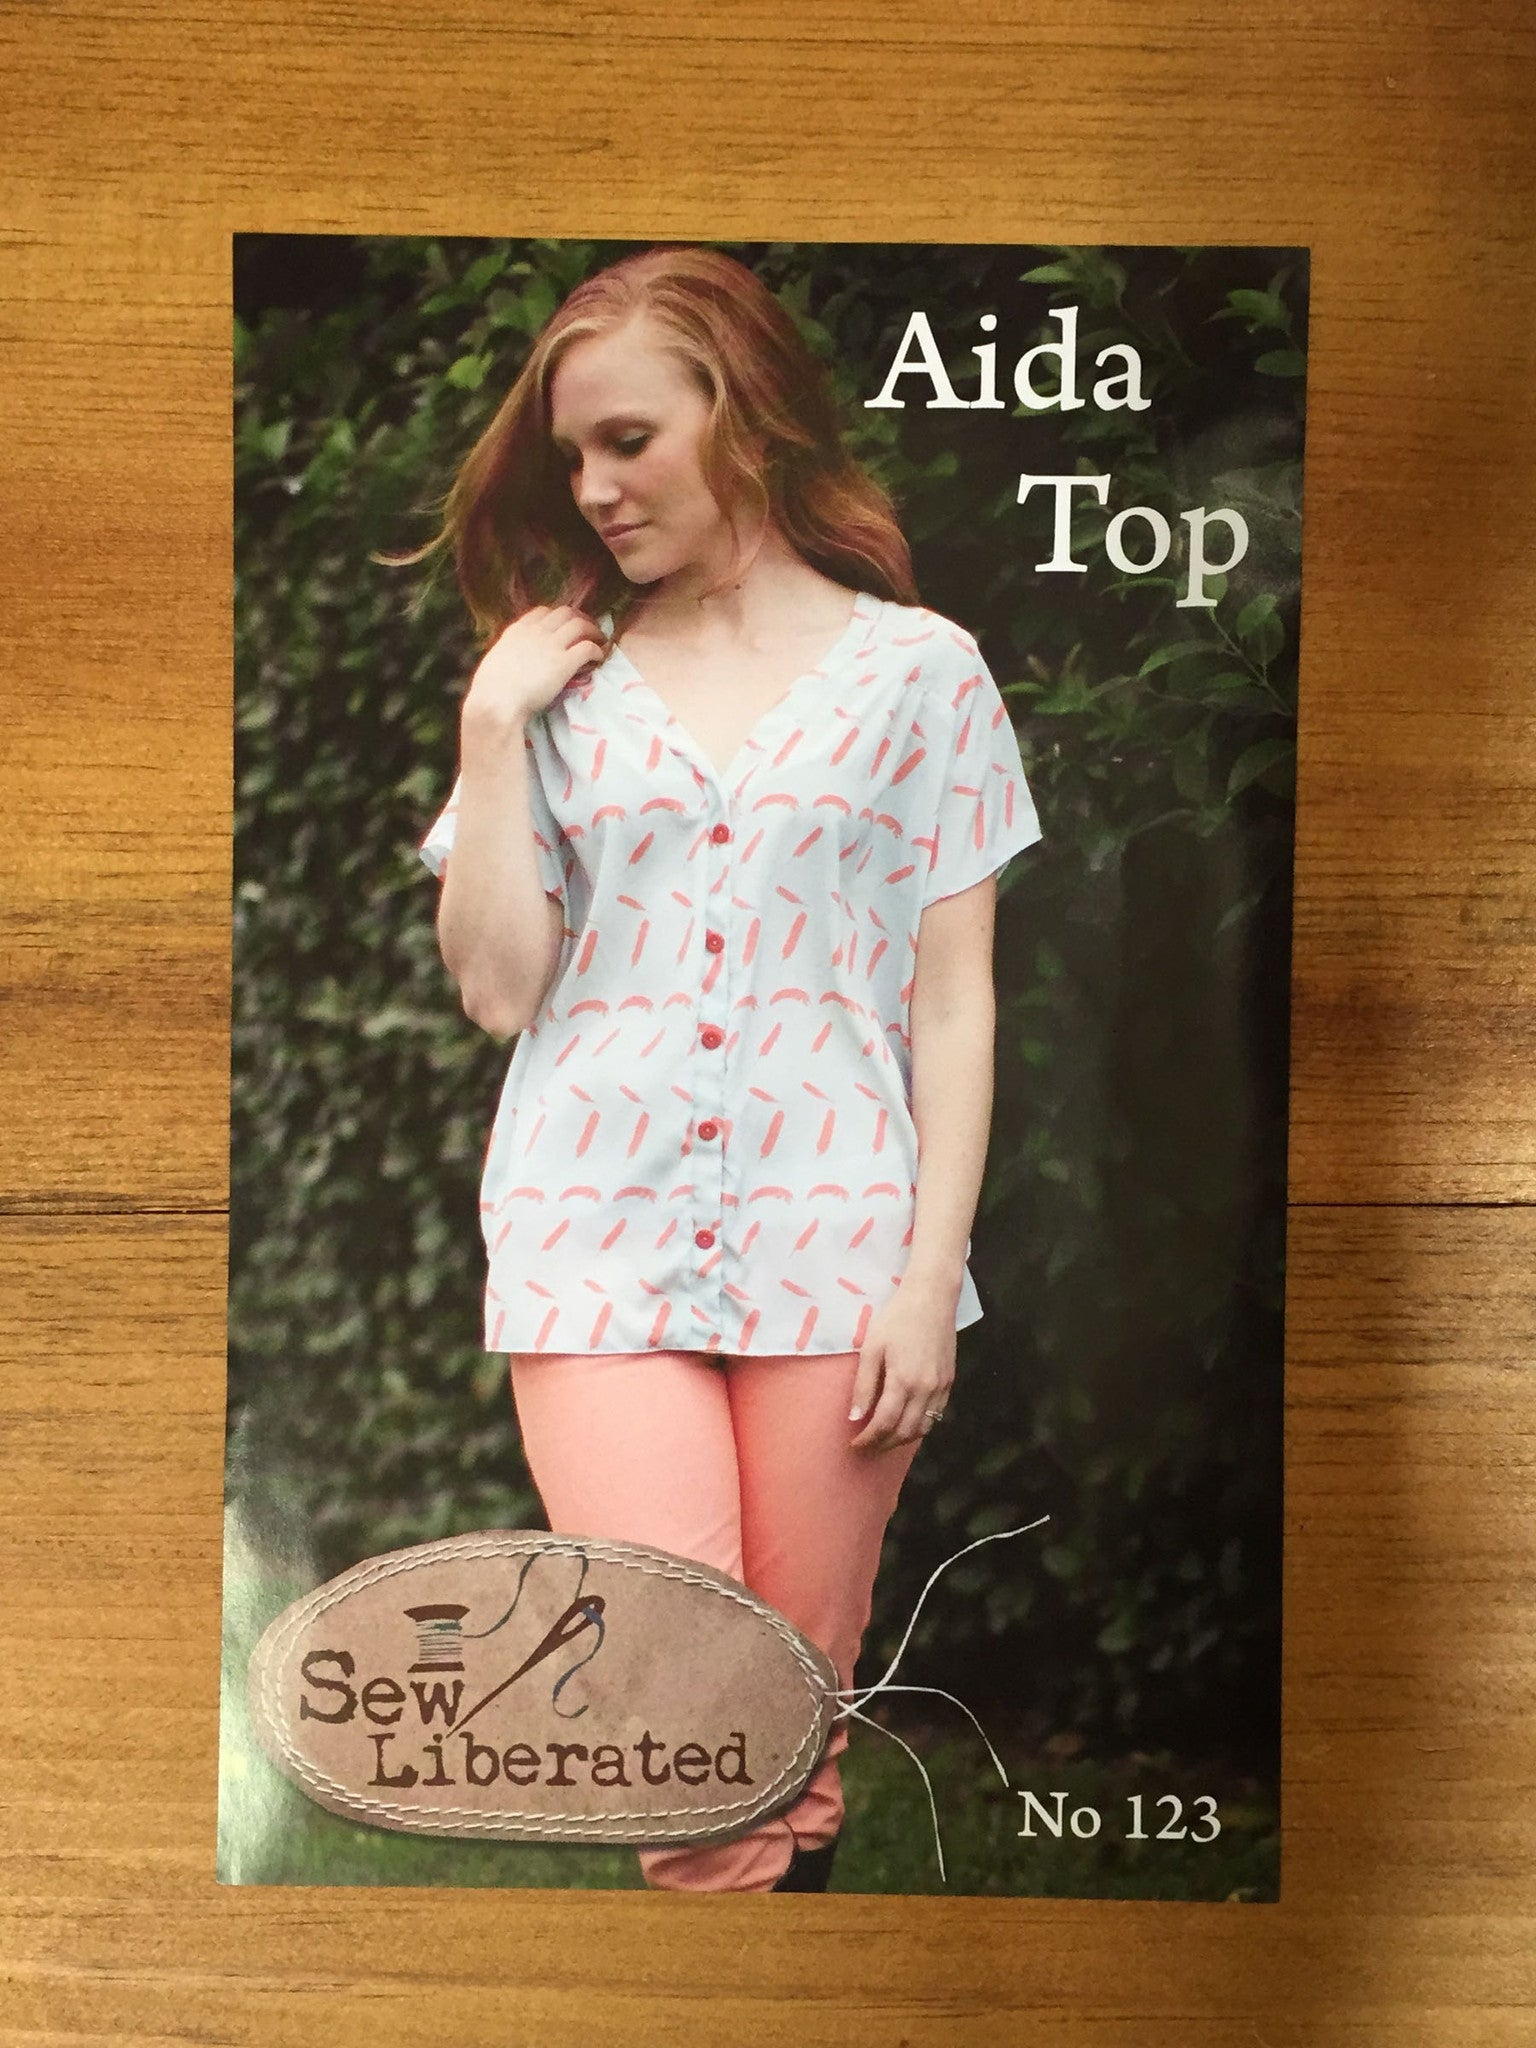 Aida Top Sew Liberated